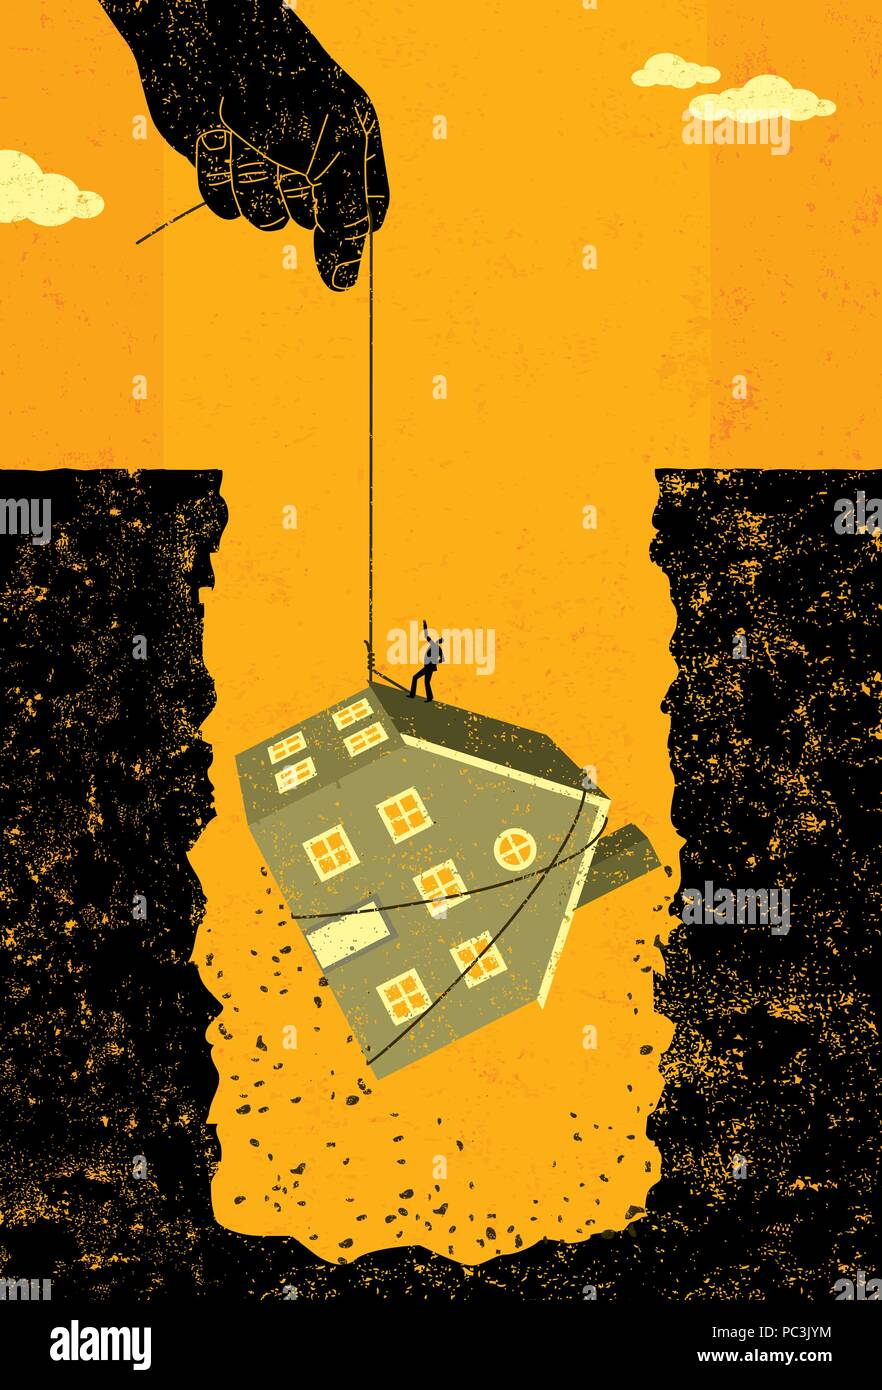 Home mortgage debt bailout A large hand offering financial assistance by lifting a man and his house out of the huge hole of debt created by the housi - Stock Vector